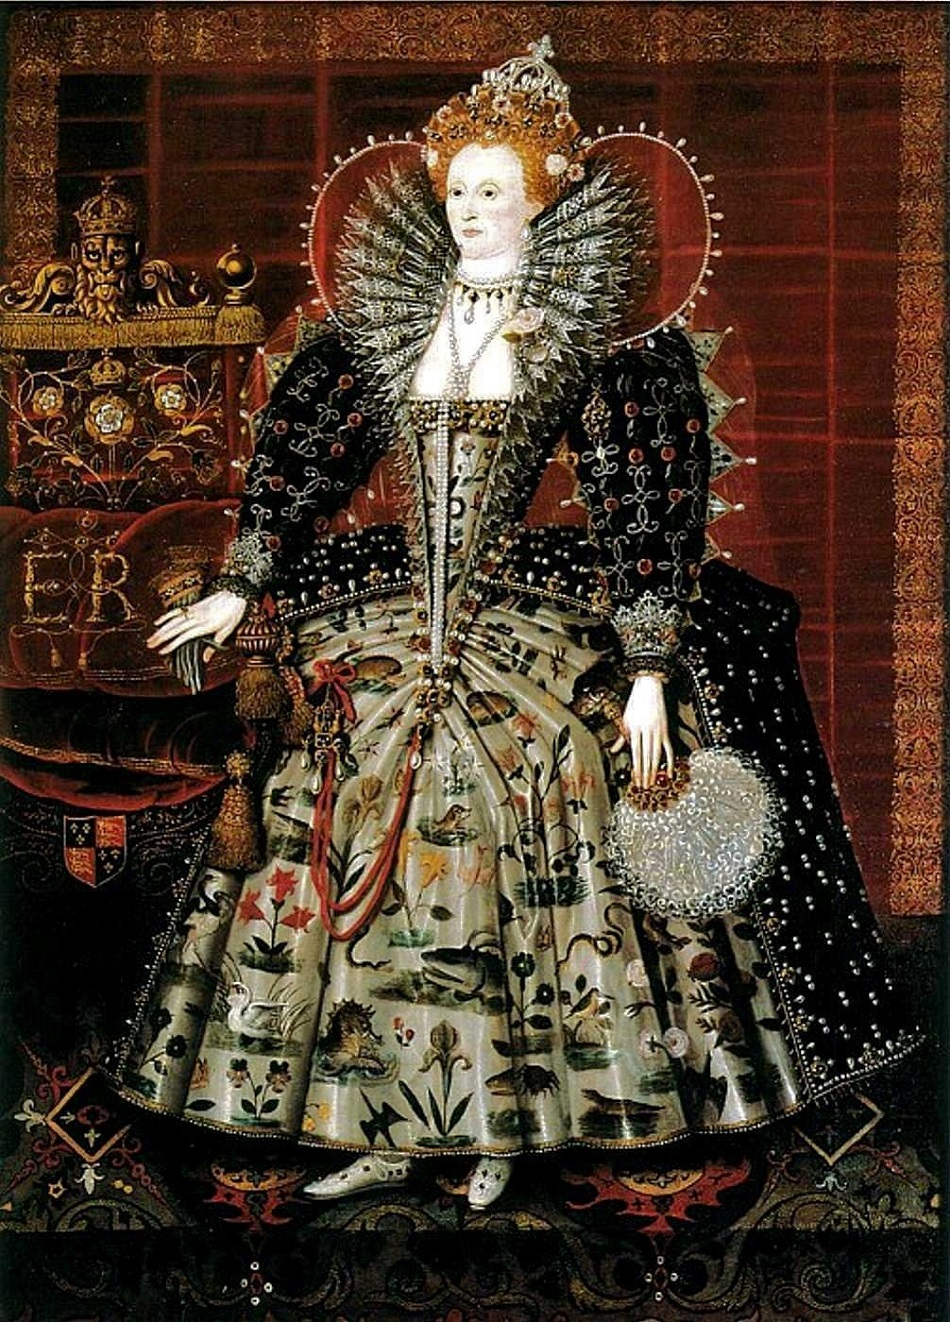 1592-99 Queen Elizabeth I 1533-1603  The Hardwick Portrait by Nicholas Hilliard and his workshop. (2).jpg